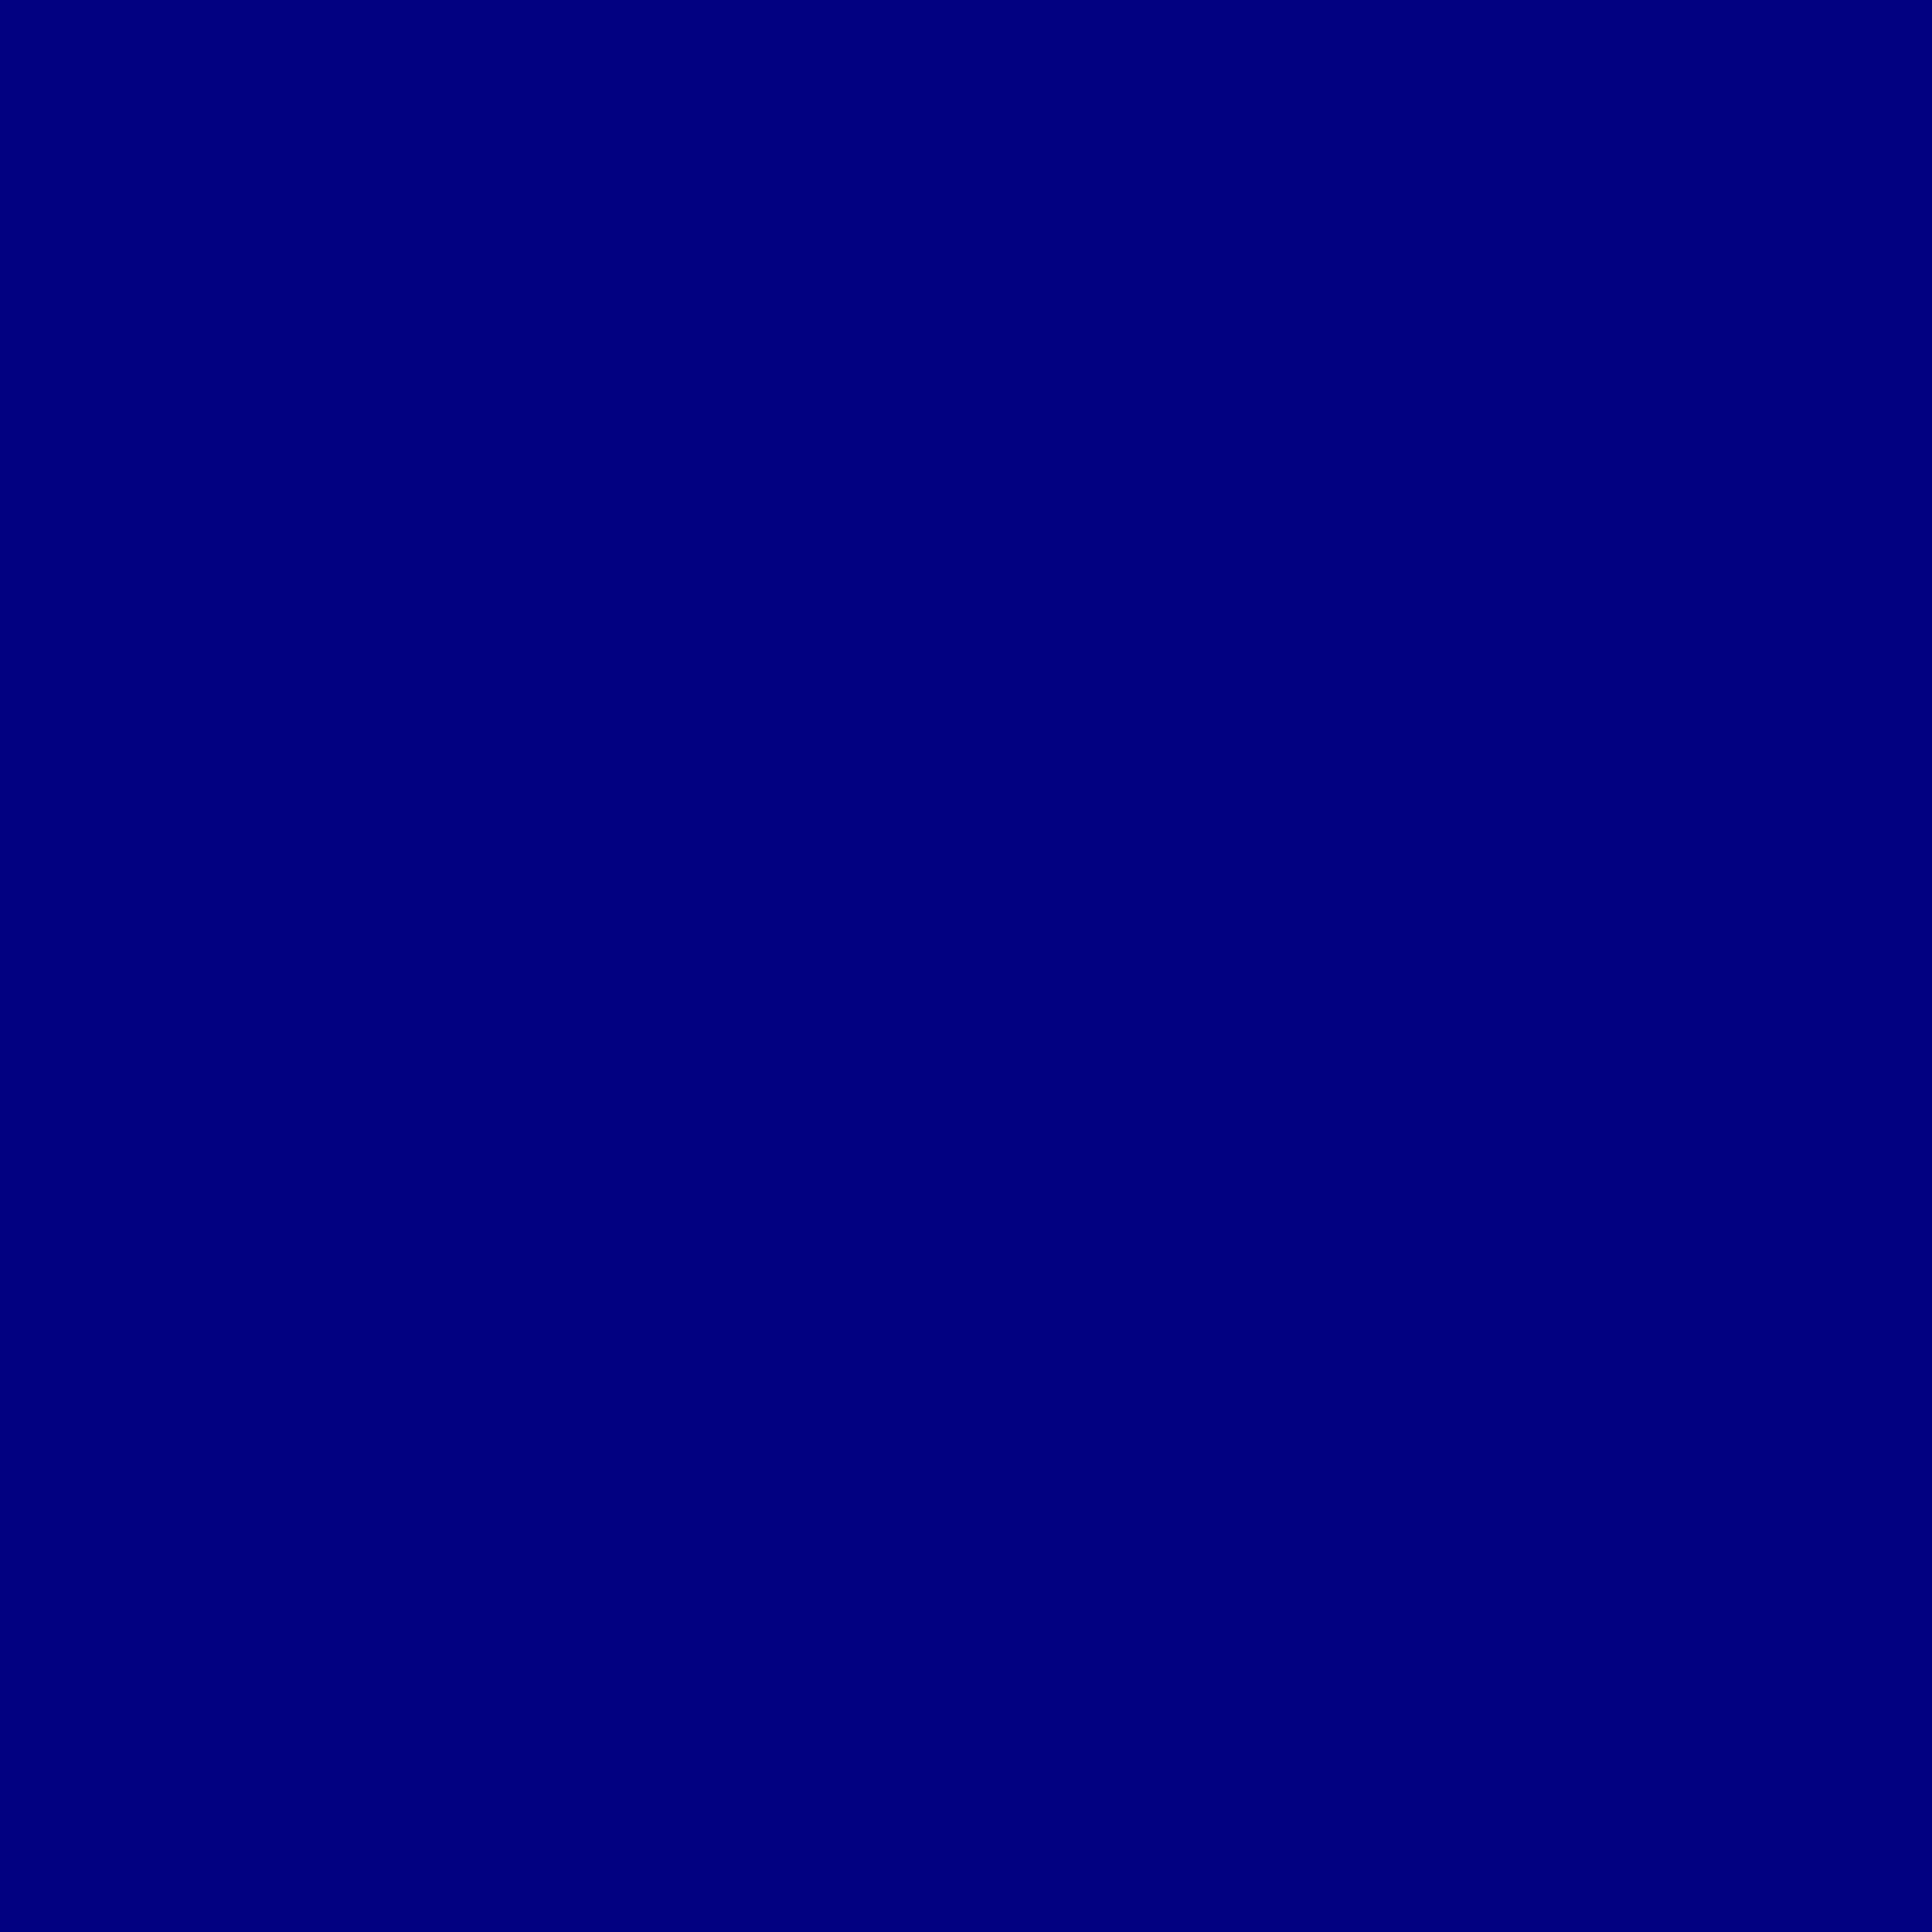 3600x3600 Navy Blue Solid Color Background